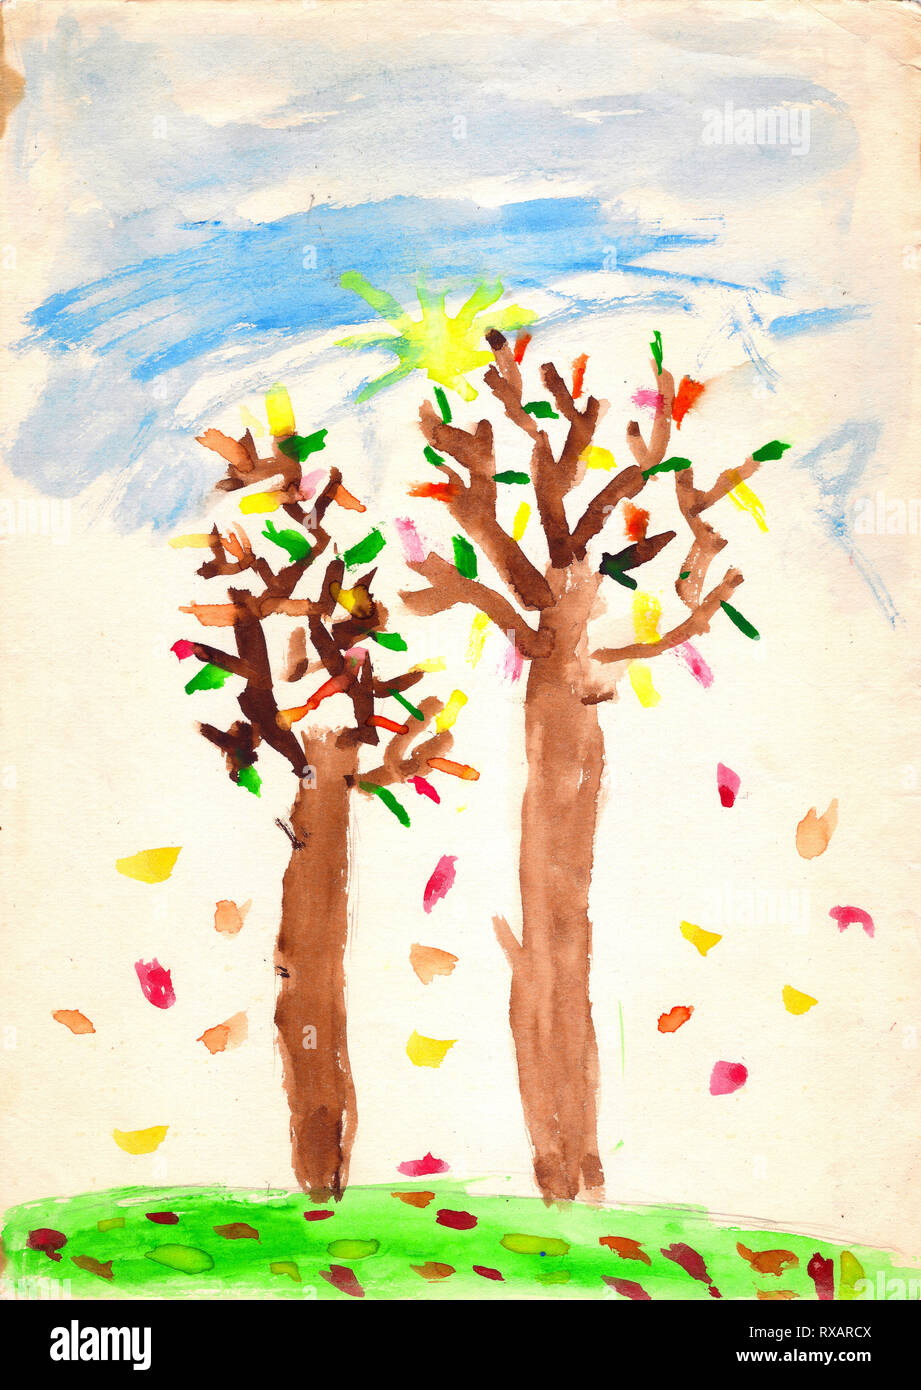 Child Drawing Autumn Tree High Resolution Stock Photography And Images Alamy